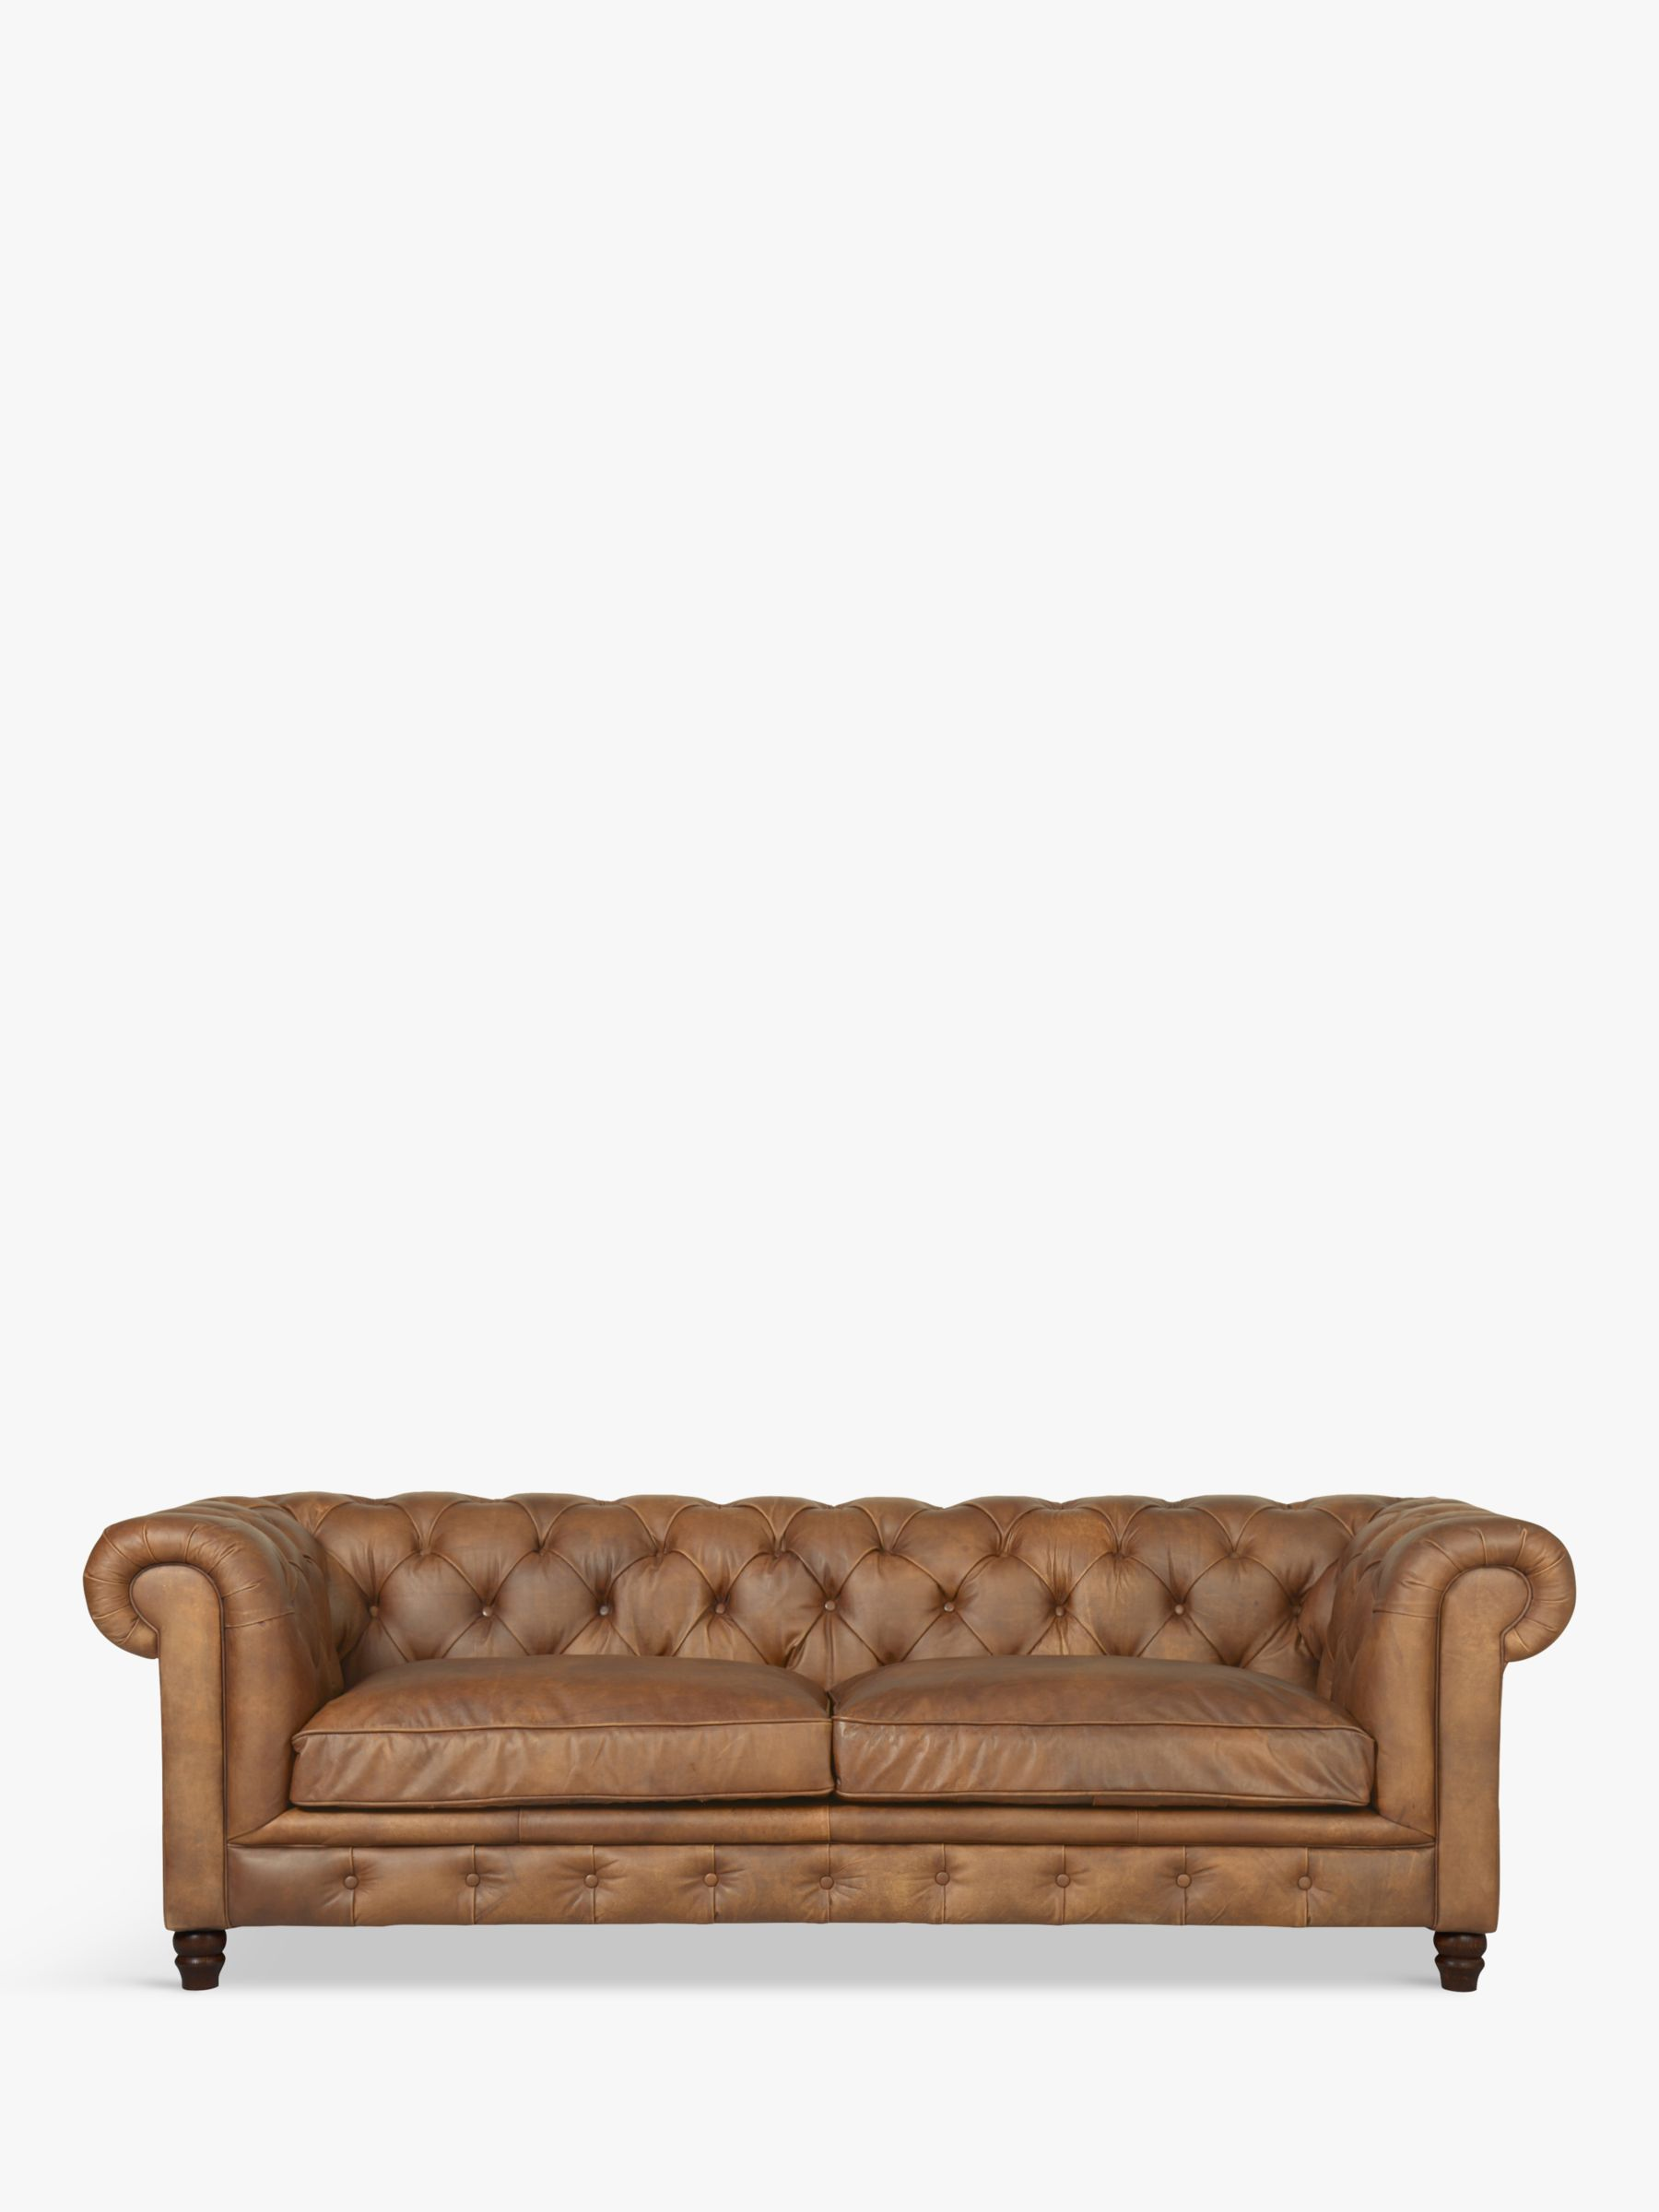 Halo Halo Earle Chesterfield Large 3 Seater Leather Sofa